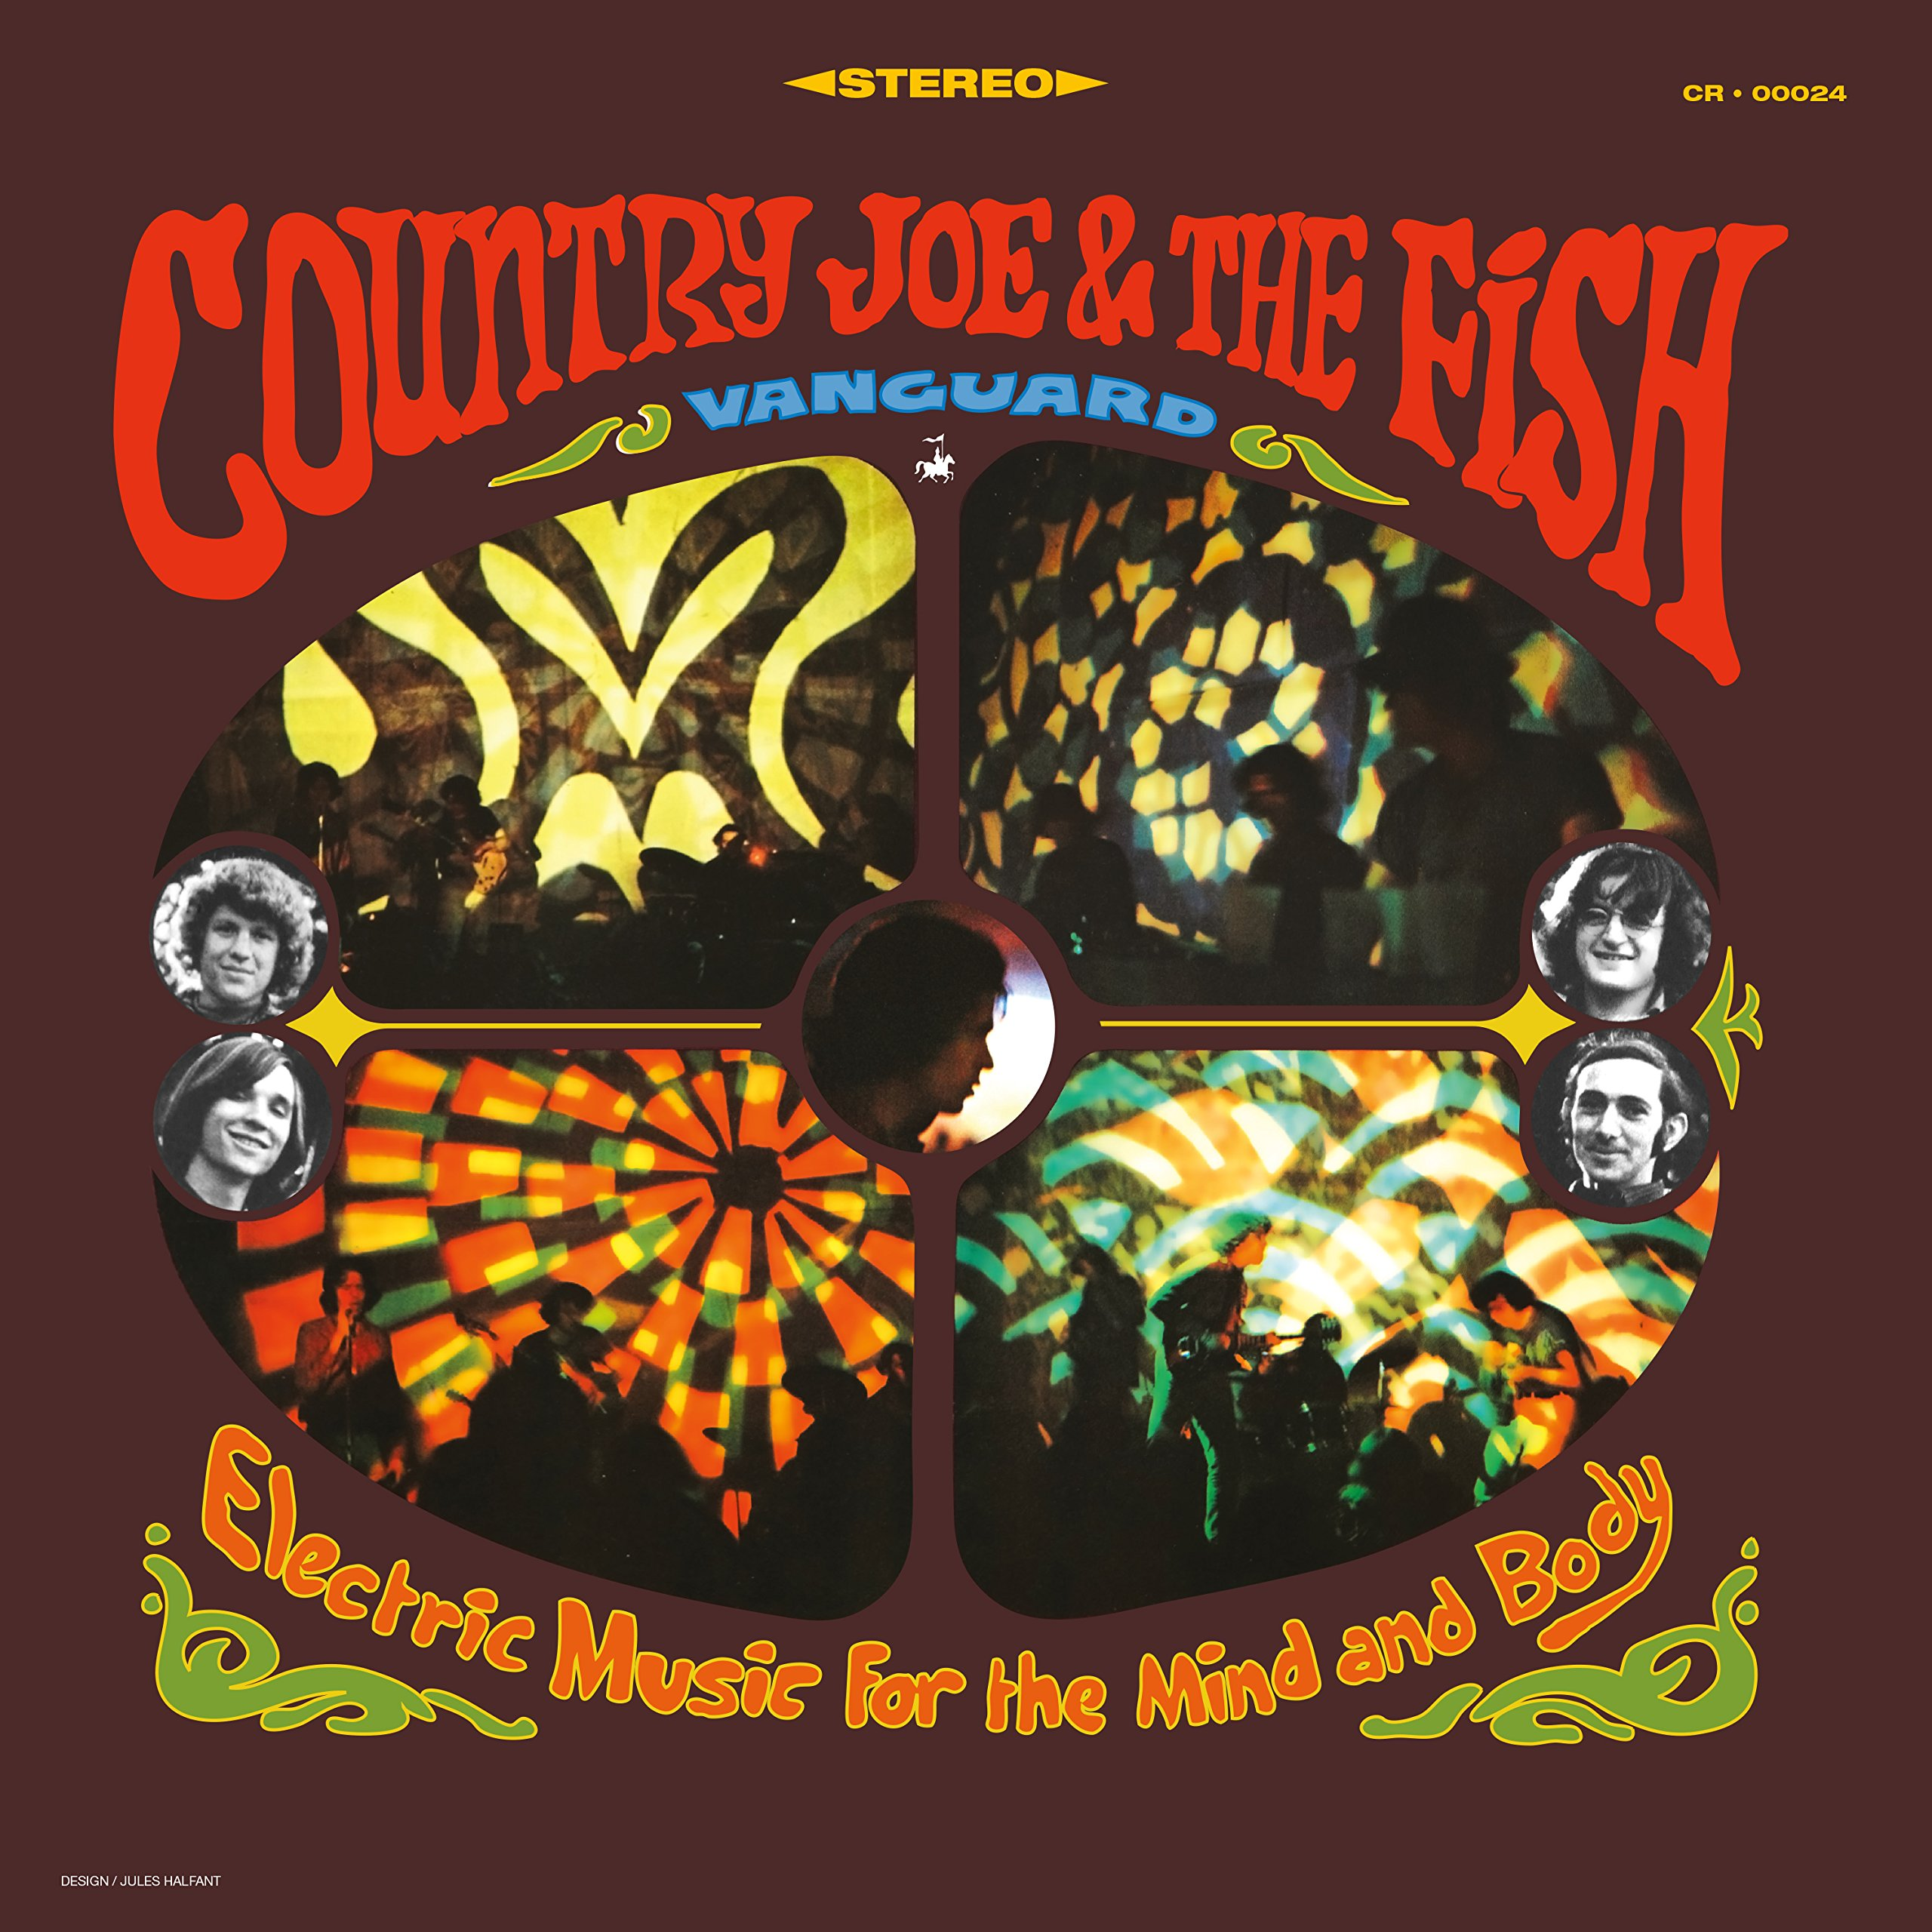 Vinilo : Country Joe & the Fish - Electric Music For The Mind And Body (180 Gram Vinyl, Reissue)